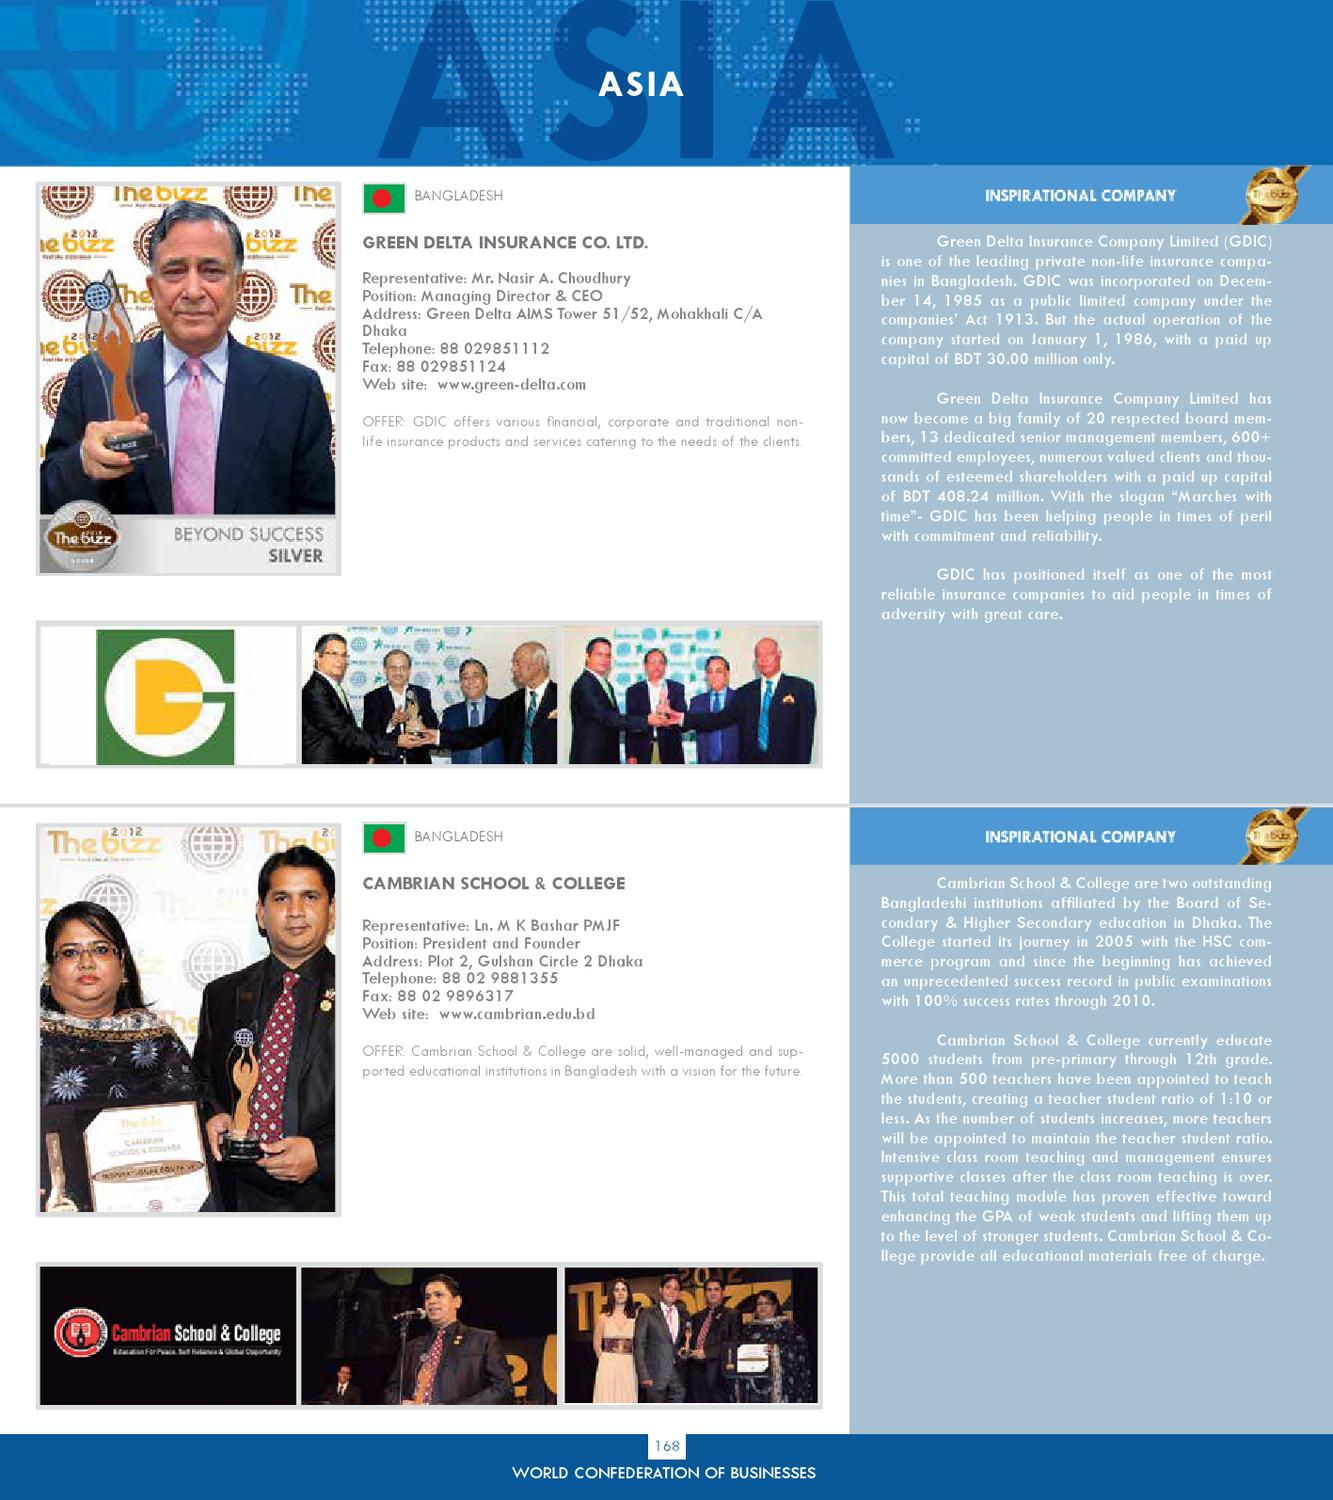 BUSINESS DIRECTORY 2012 by World Confederation of Businesses